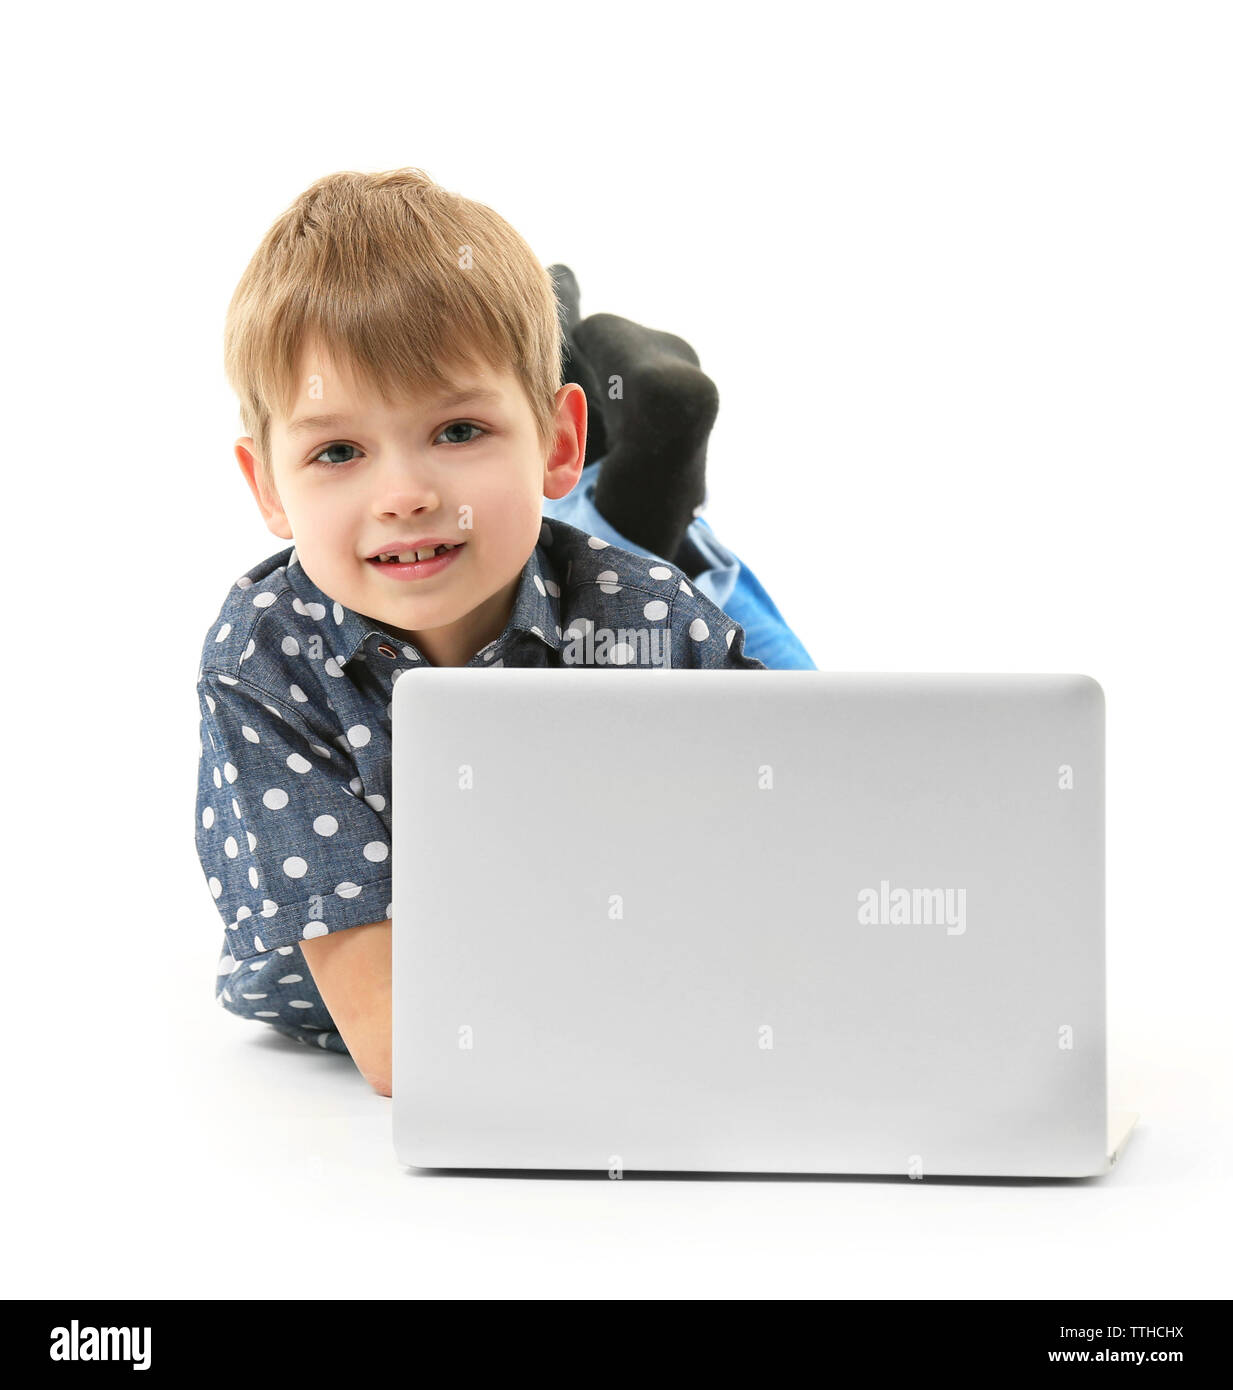 Little boy with laptop isolated on white - Stock Image